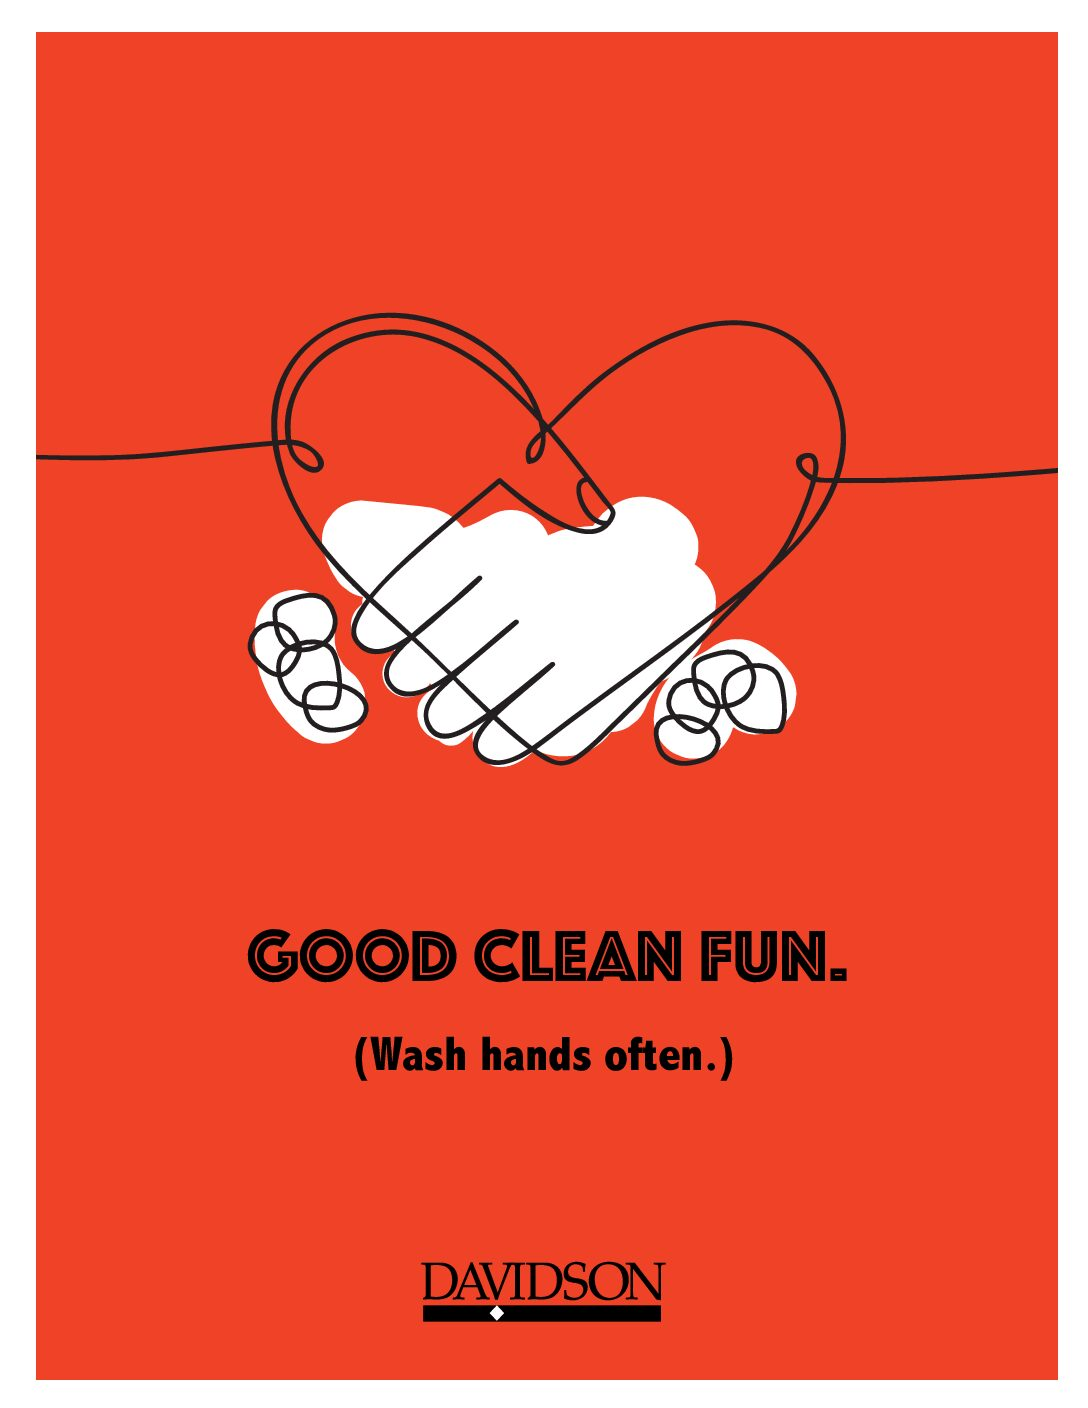 """""""Good clean fun, wash hands often"""" with heart sketch and hands lathering"""